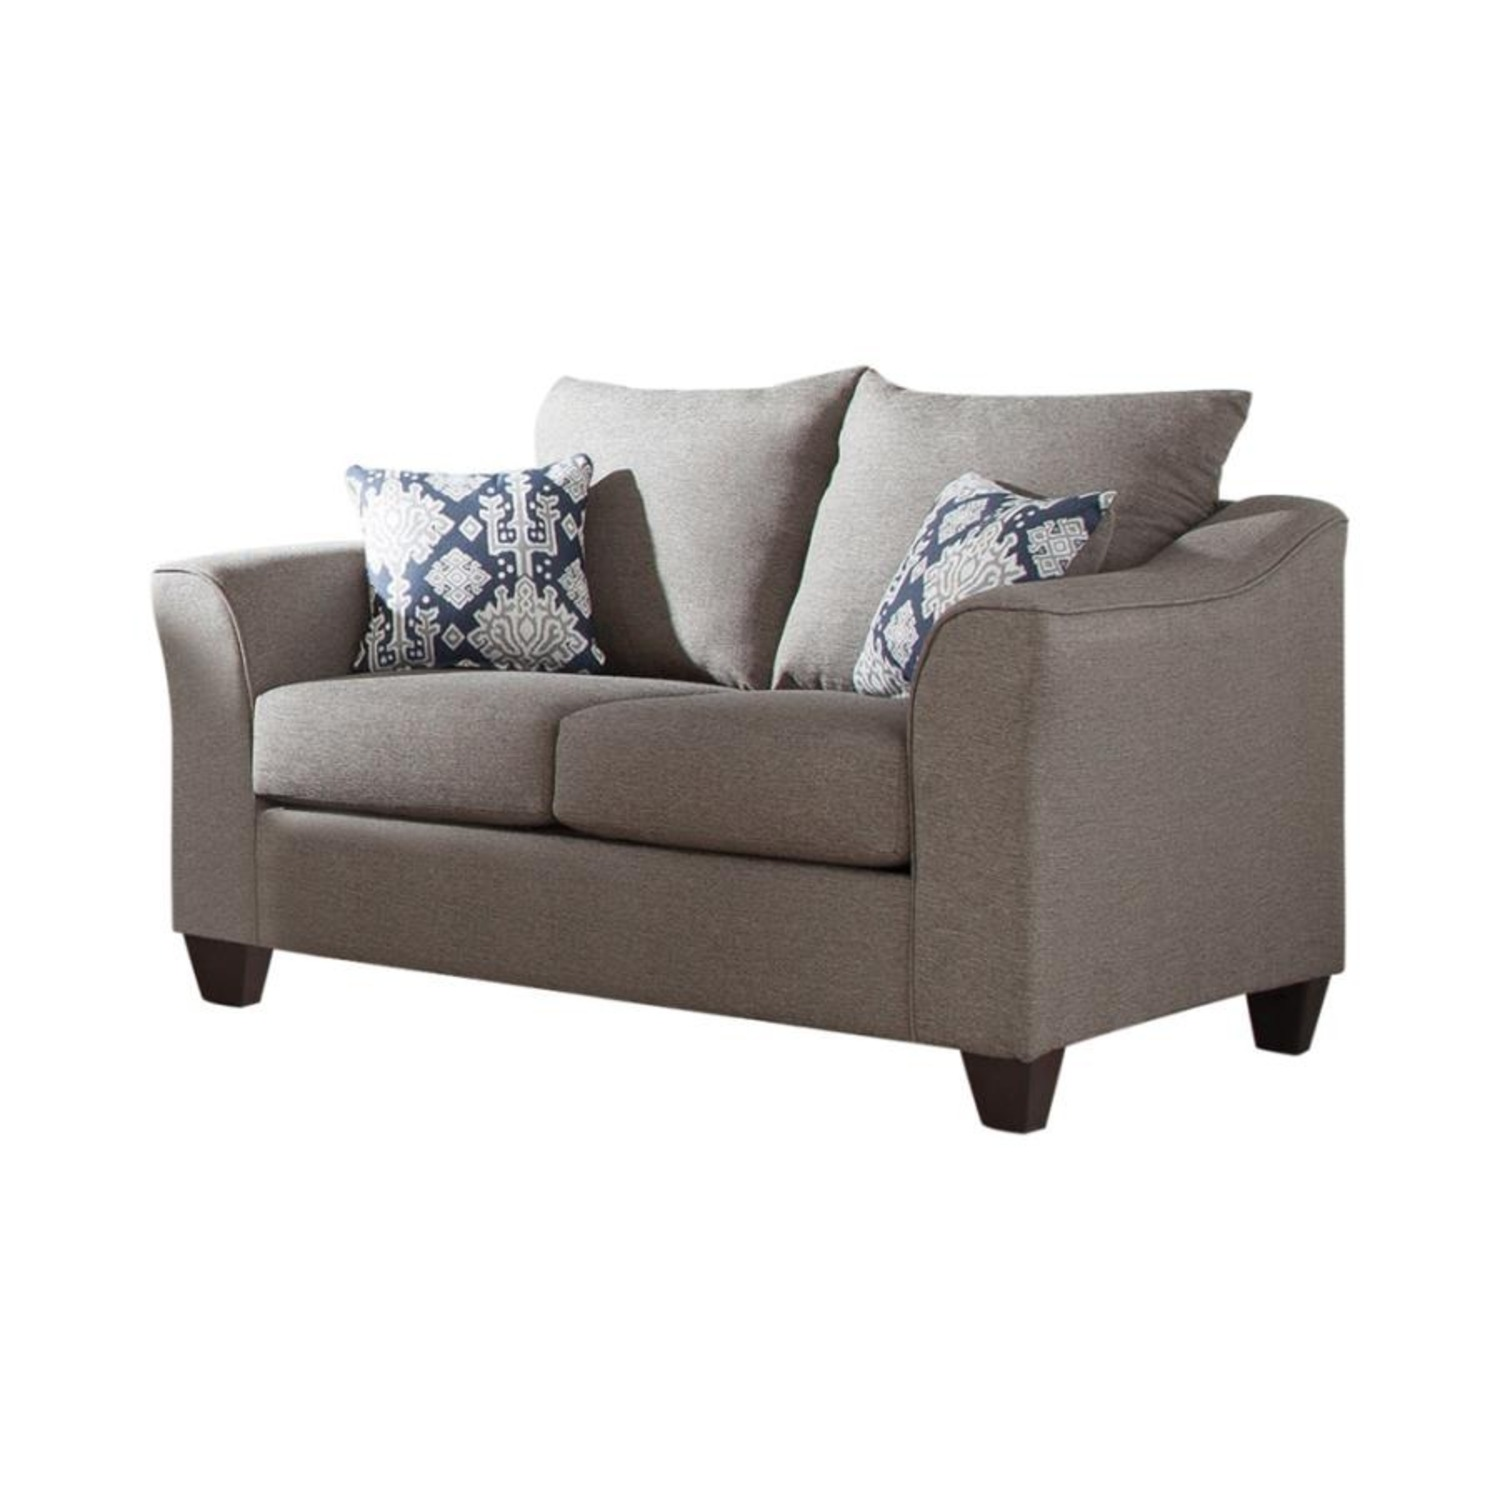 Flared Arms Loveseat In Neutral Grey - image-0